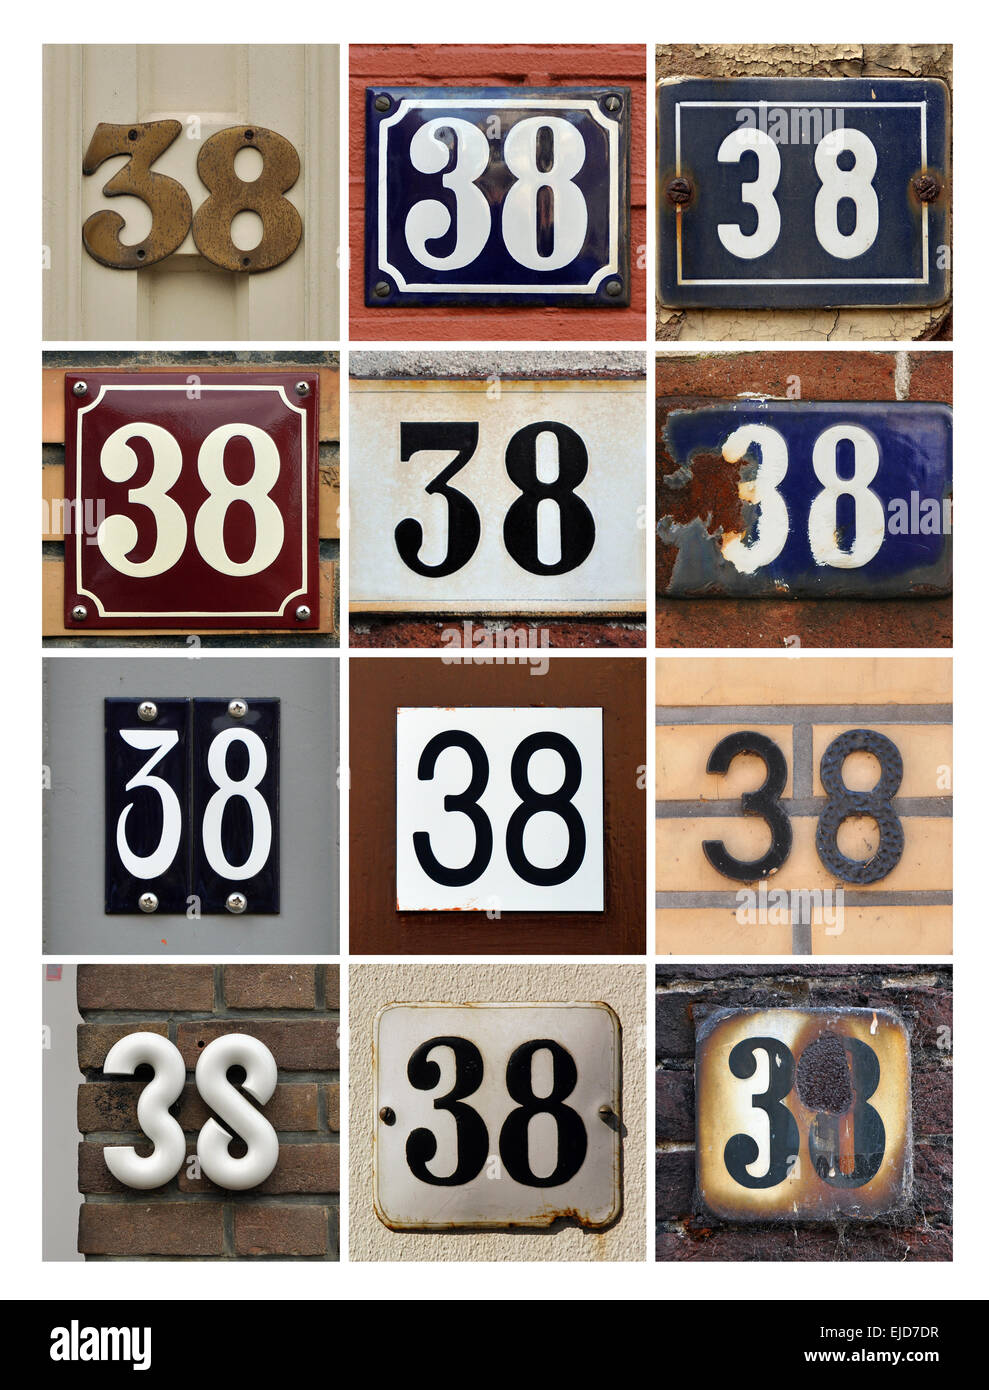 Numbers 38 - Collage of House Numbers Thirty-eight - Stock Image